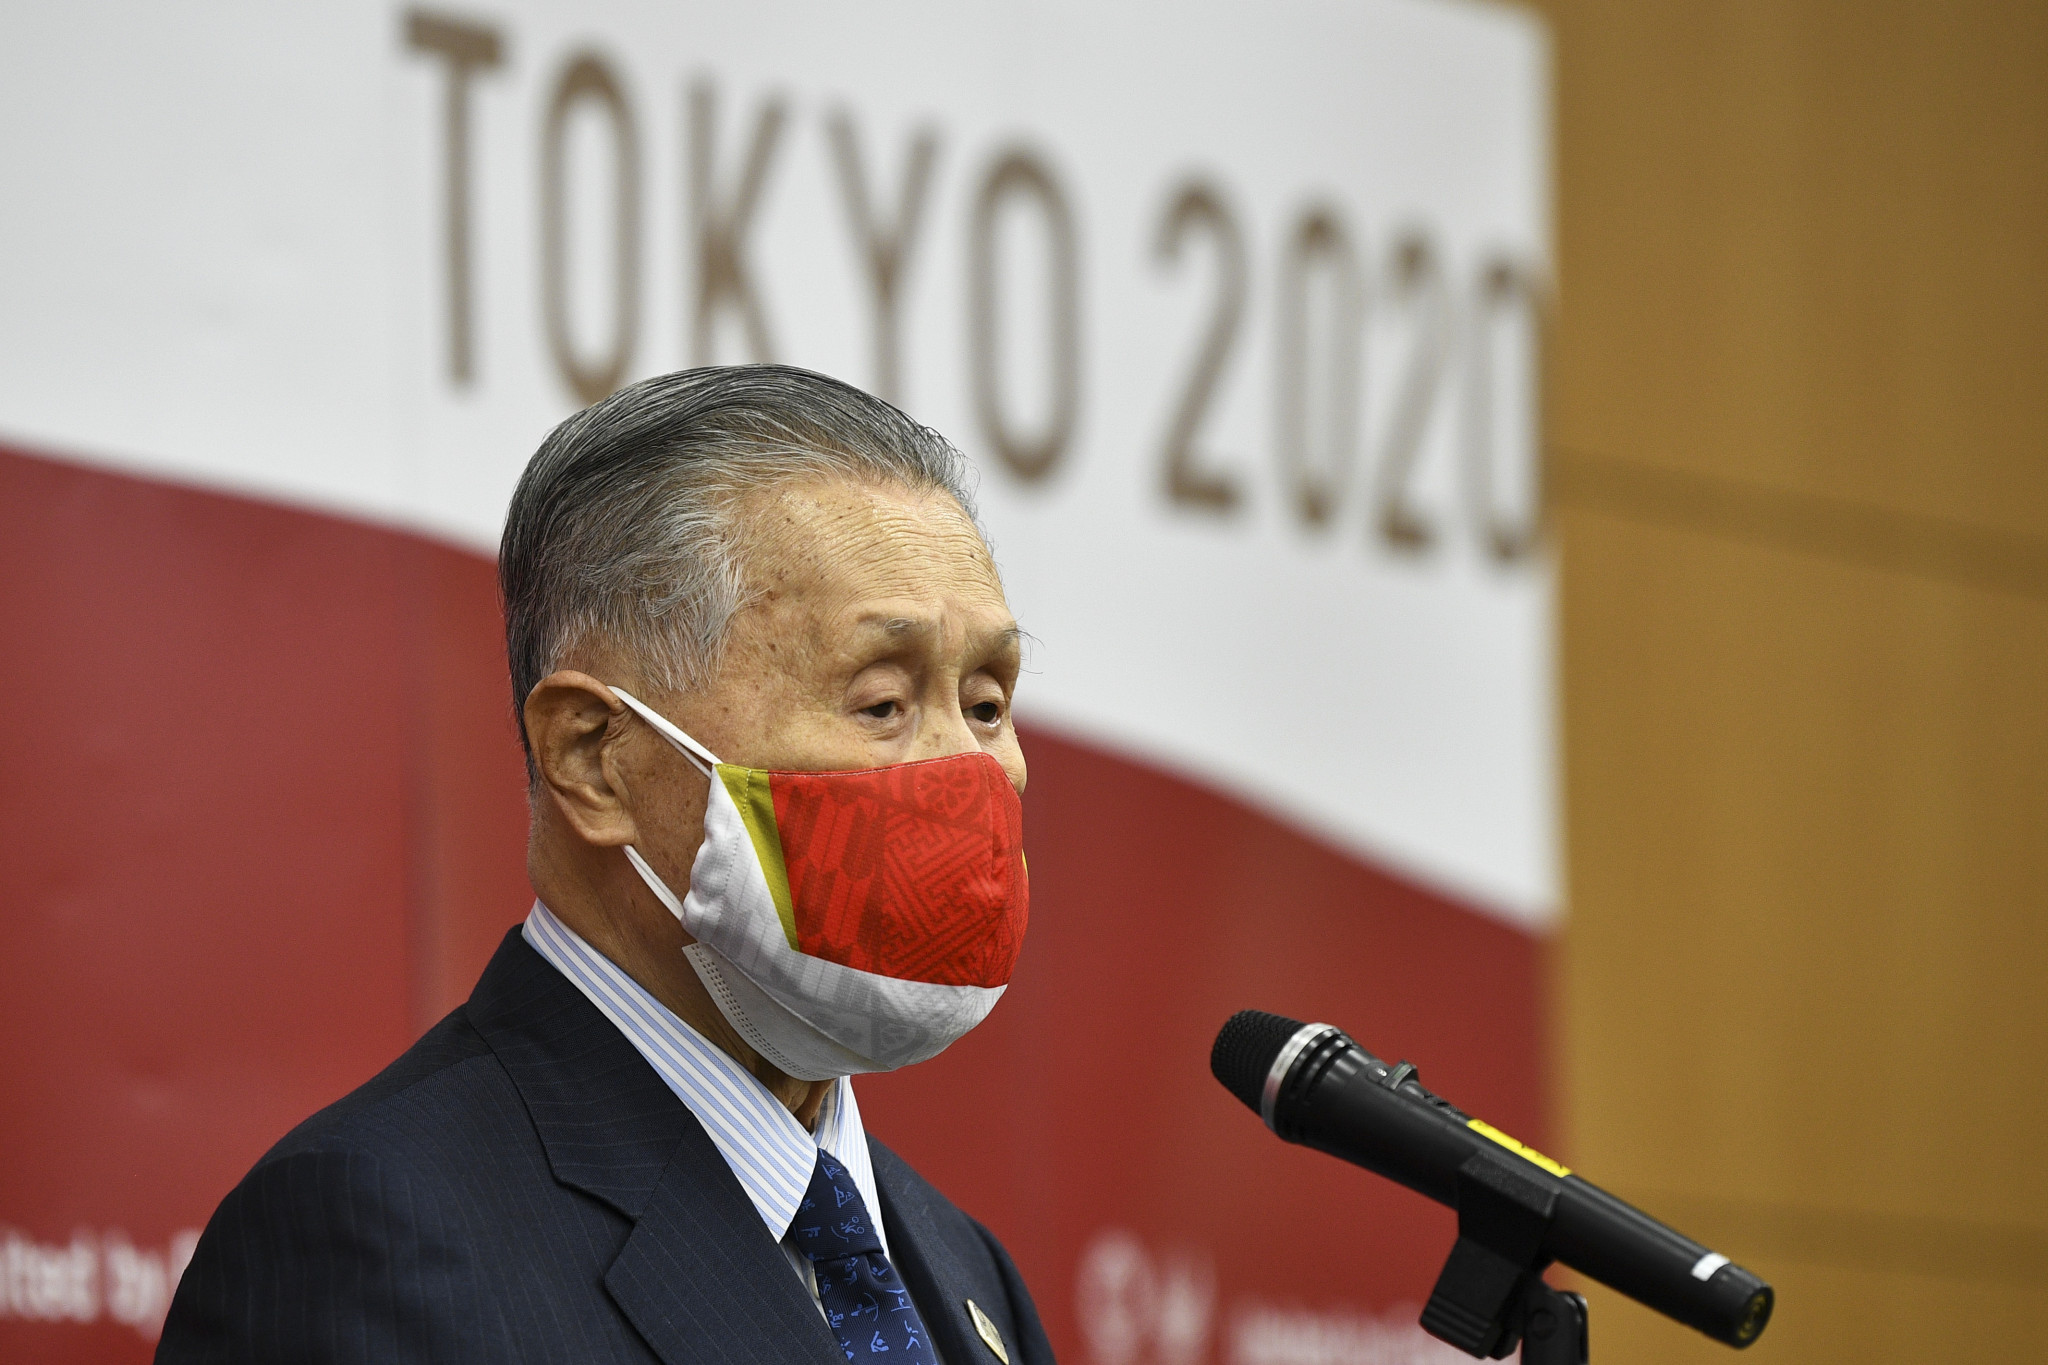 Tokyo 2020 President Yoshirō Mori thanked the domestic partners for their support during the global health crisis ©Getty Images